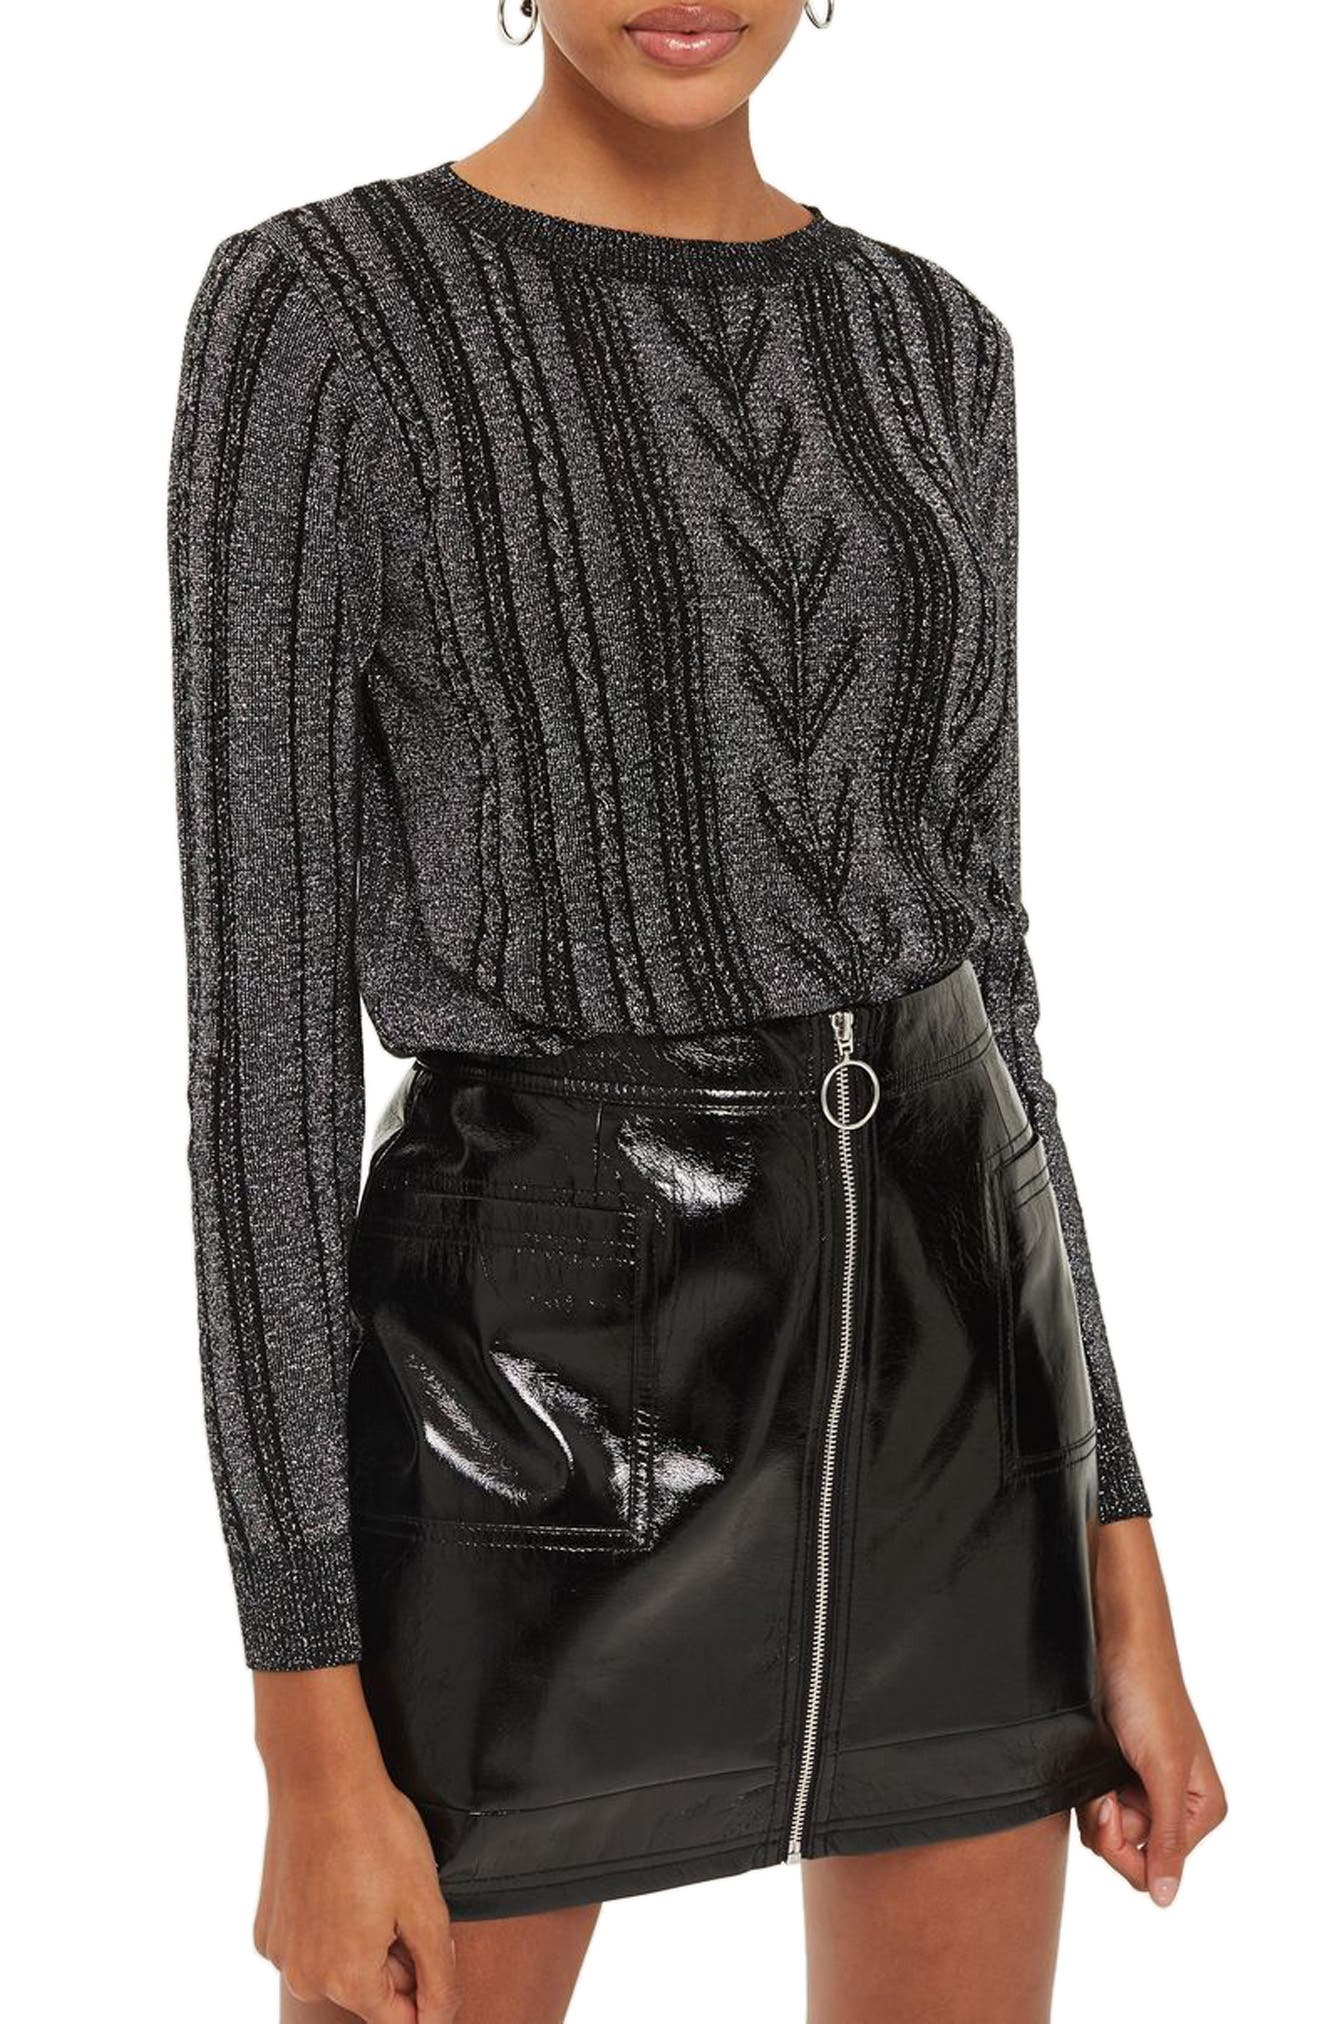 Main Image - Topshop Metallic Cable Knit Sweater